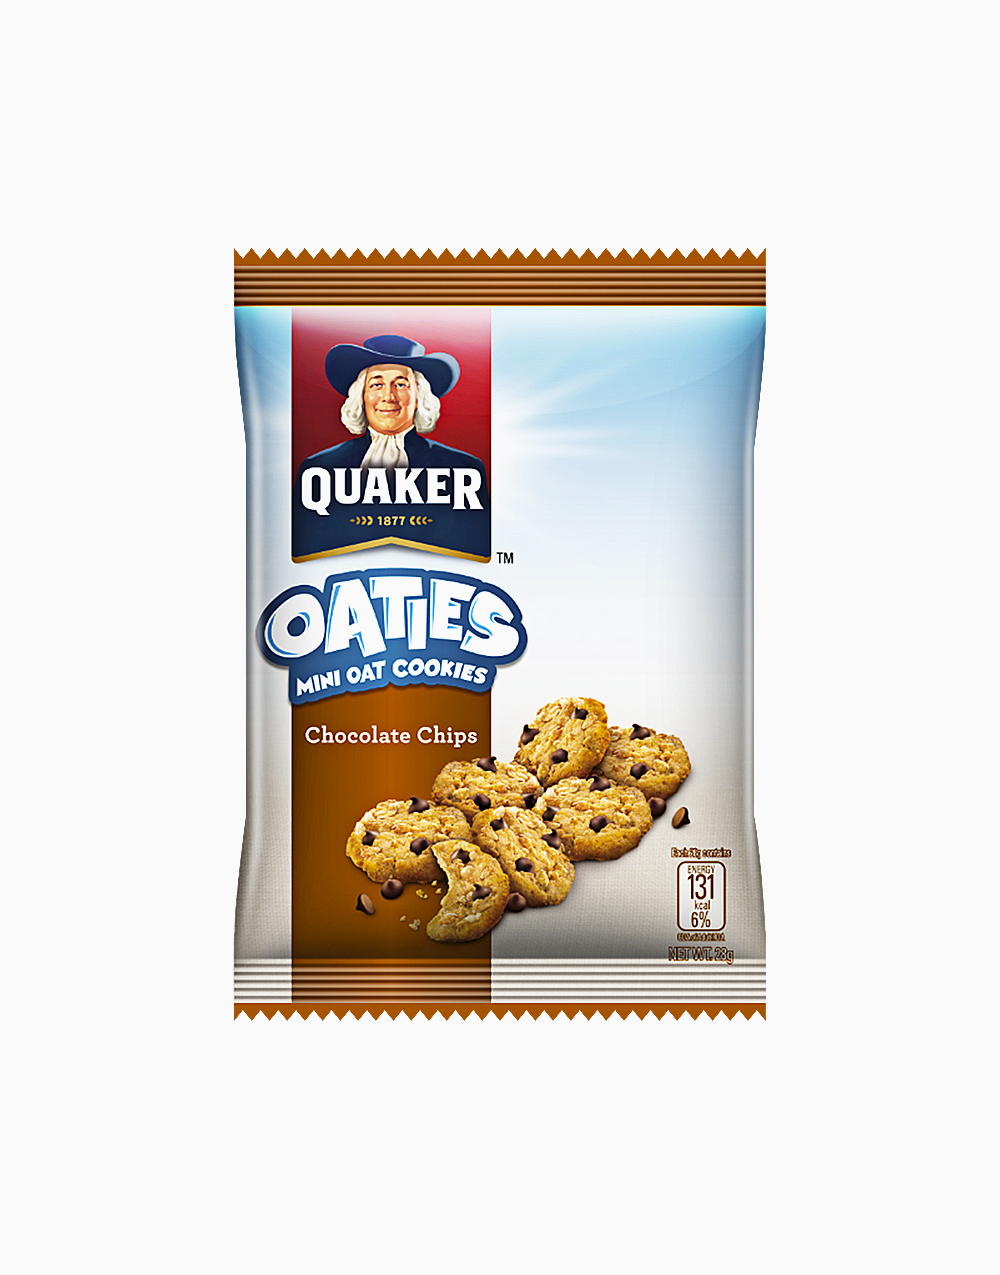 Oaties Chocolate Chips (28g) by Quaker